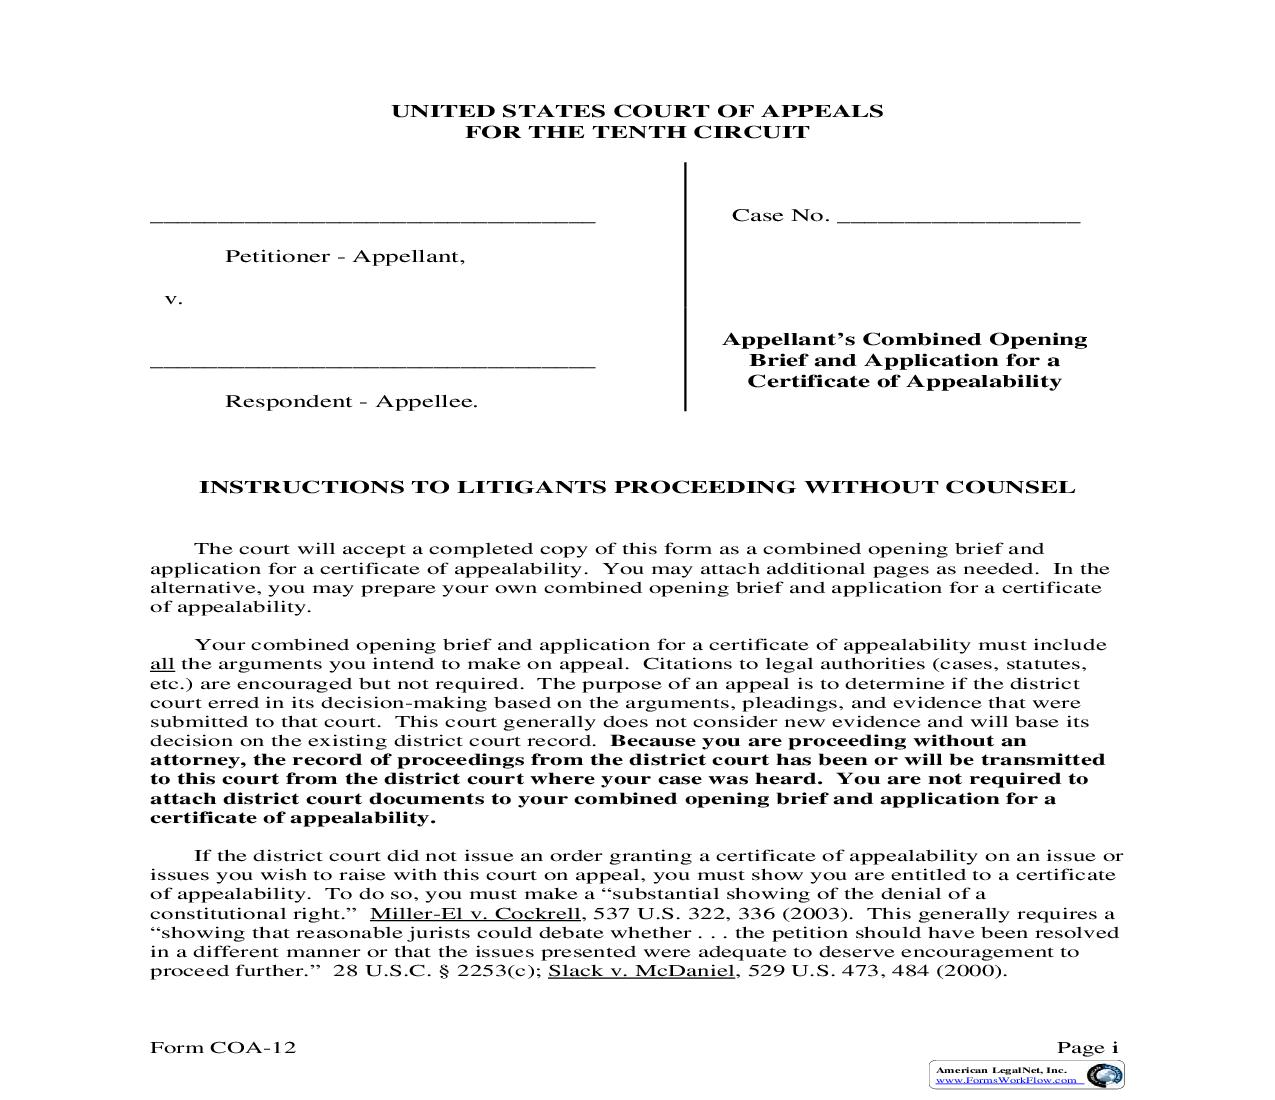 Appellants Combined Opening Brief And Application For Certificate Of Appealability {COA-12} | Pdf Fpdf Doc Docx | Official Federal Forms